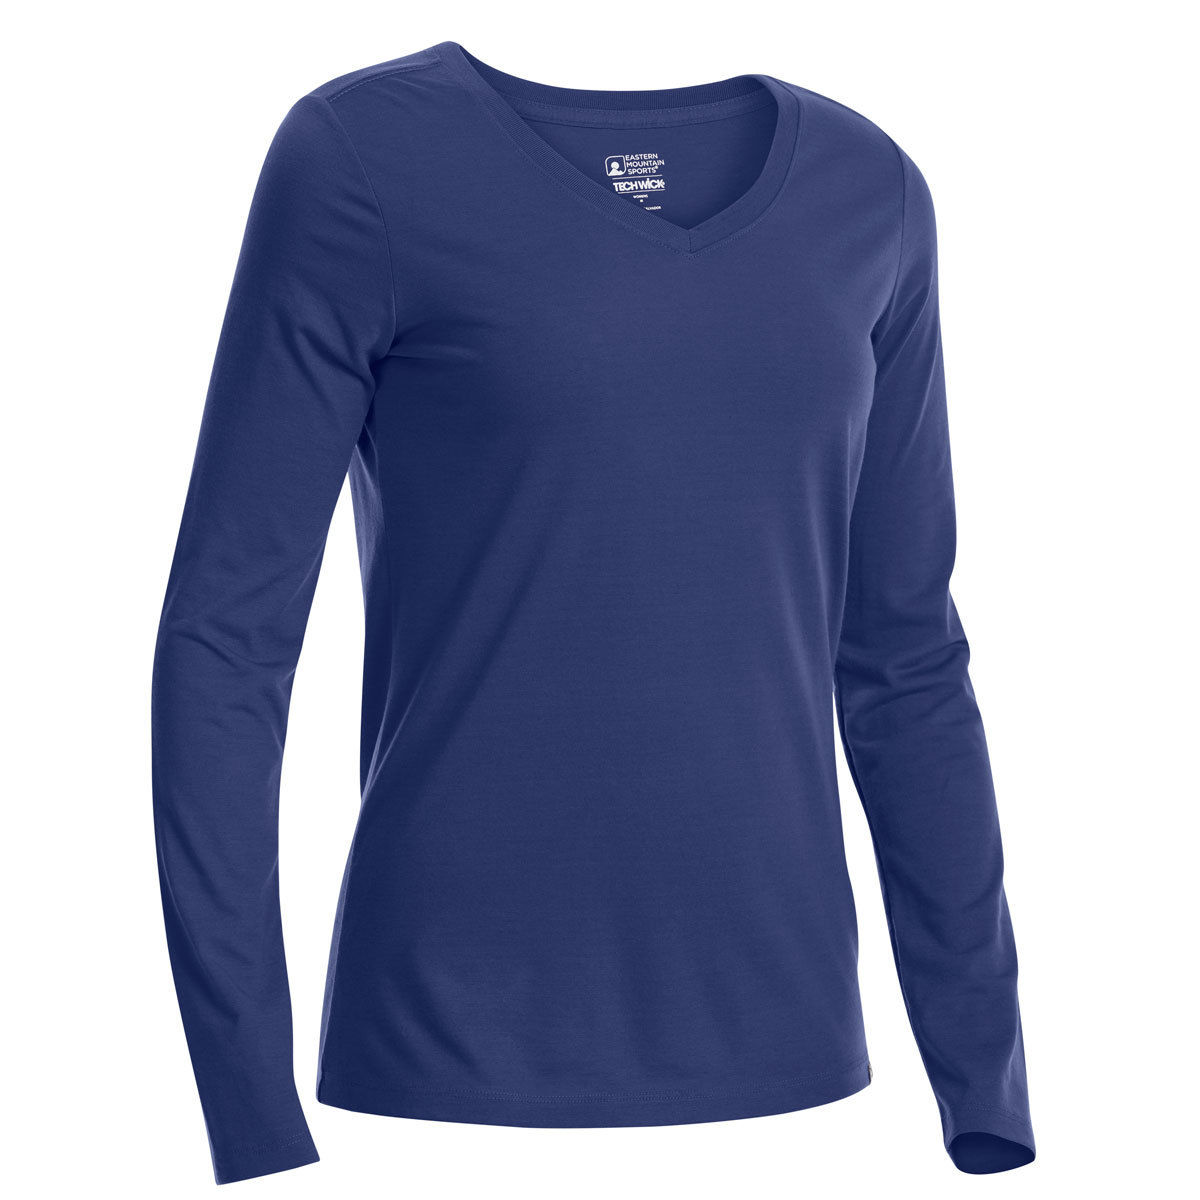 Ems Women's Techwick Vital V-Neck Long-Sleeve Tee - Blue, XL